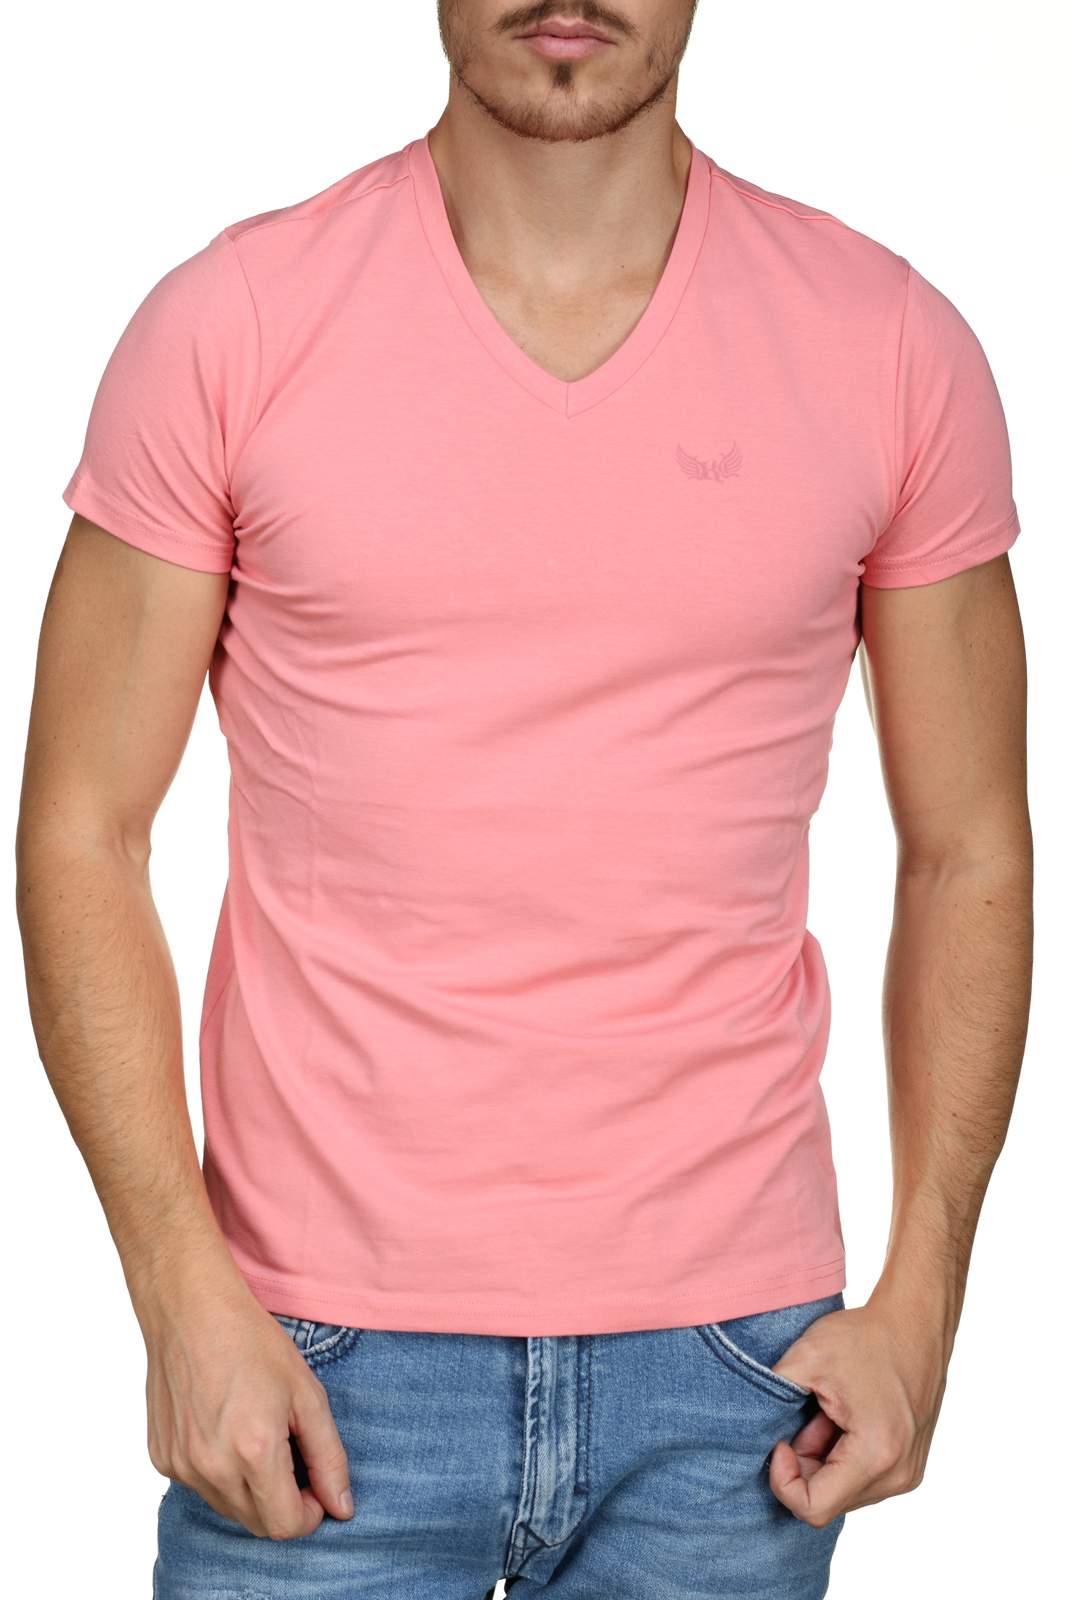 T-S manches courtes  Kaporal GIFT H18M11 LIGHT GREY/PINK